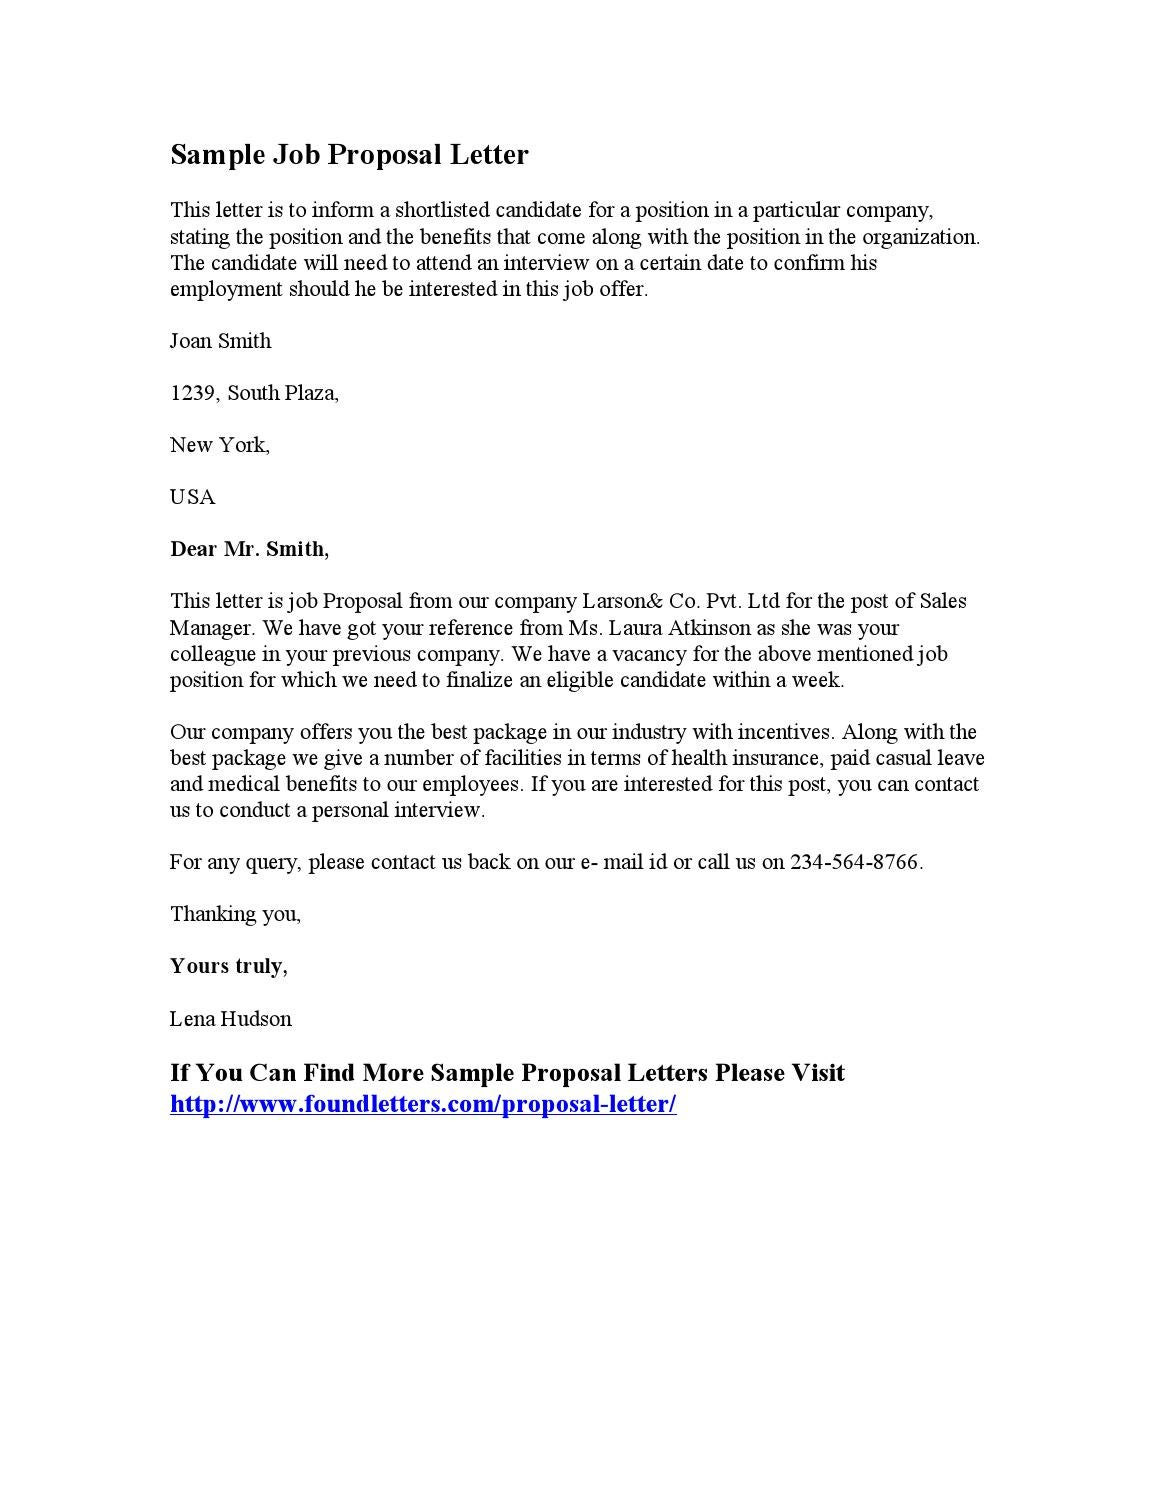 Sample Job Proposal Letter by Stephen Wash issuu – Proposal Letter for Employment